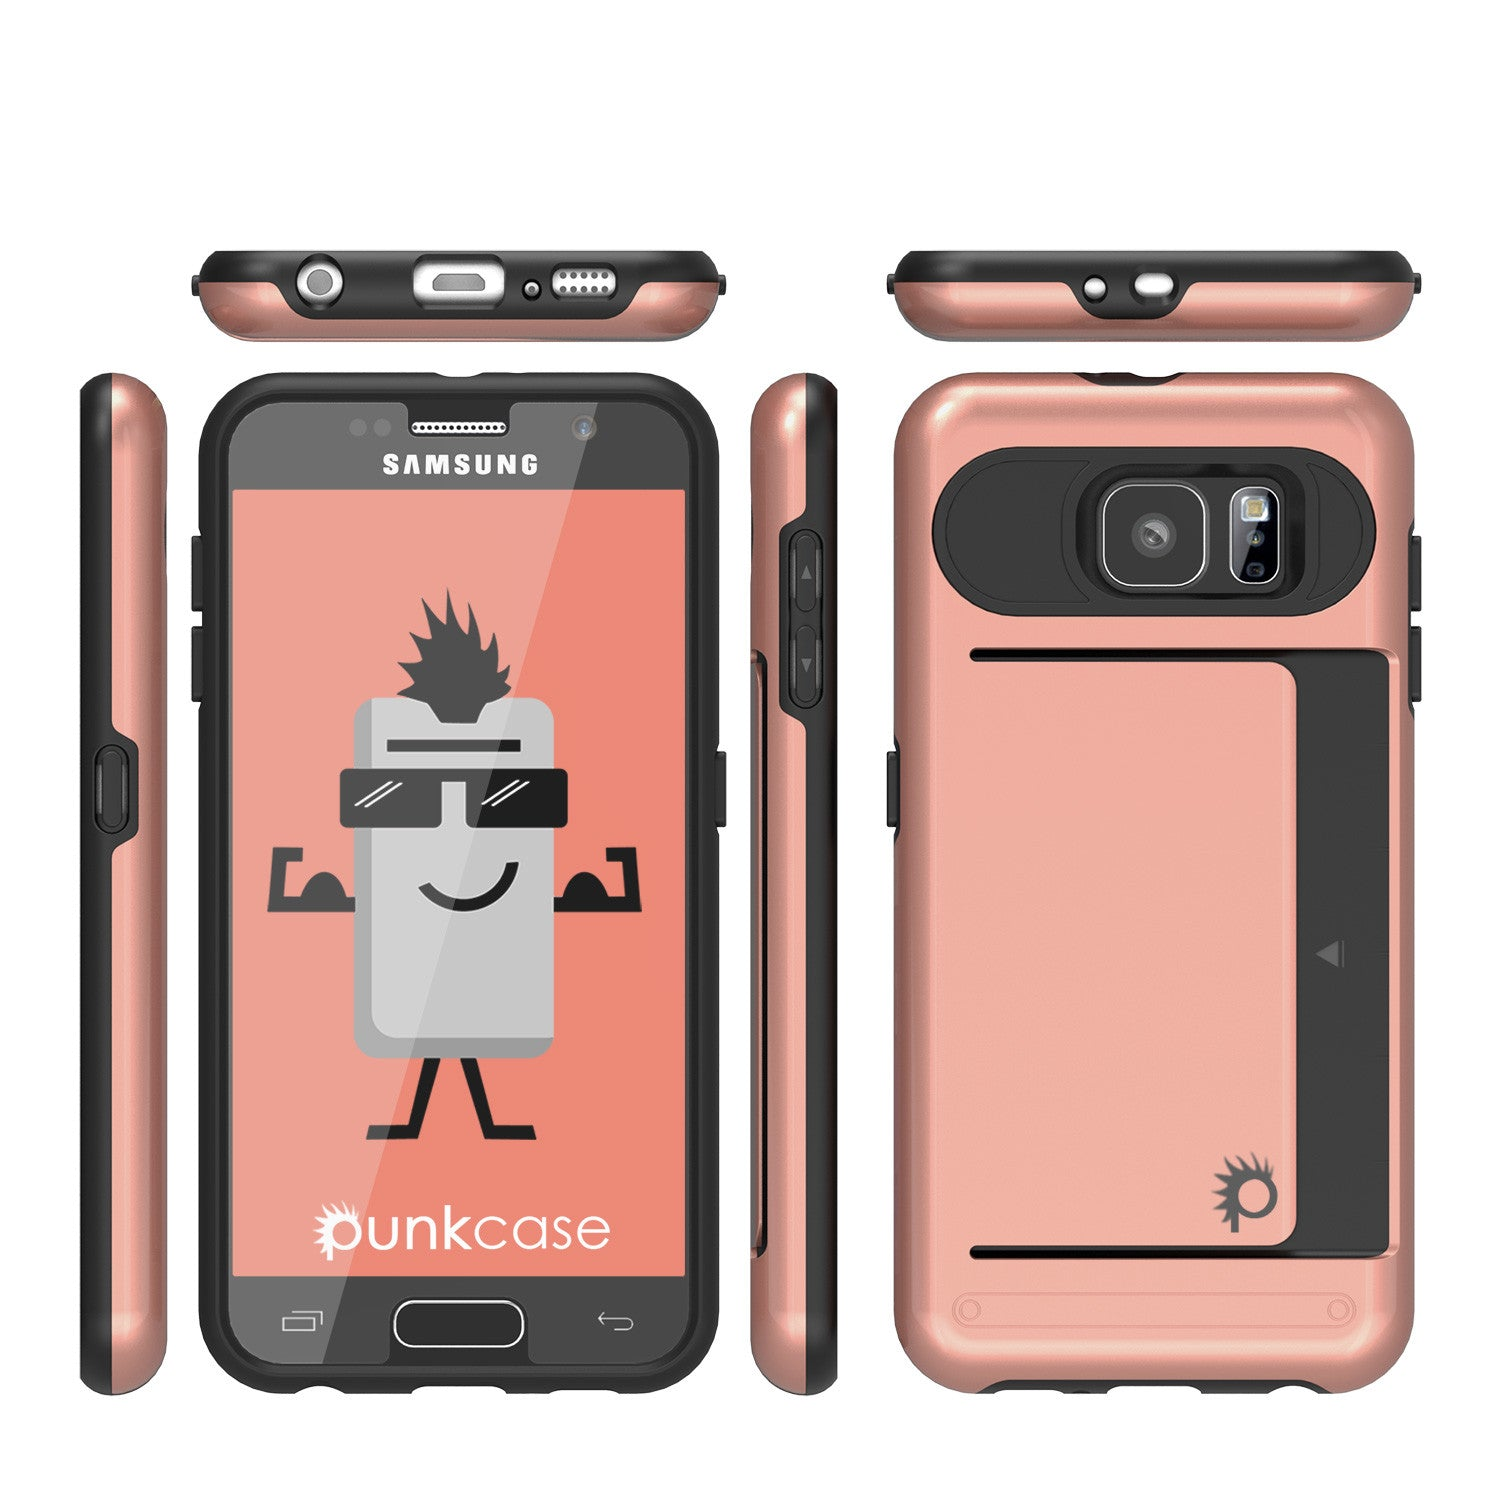 Galaxy s6 Case PunkCase CLUTCH Rose Gold Series Slim Armor Soft Cover Case w/ Tempered Glass